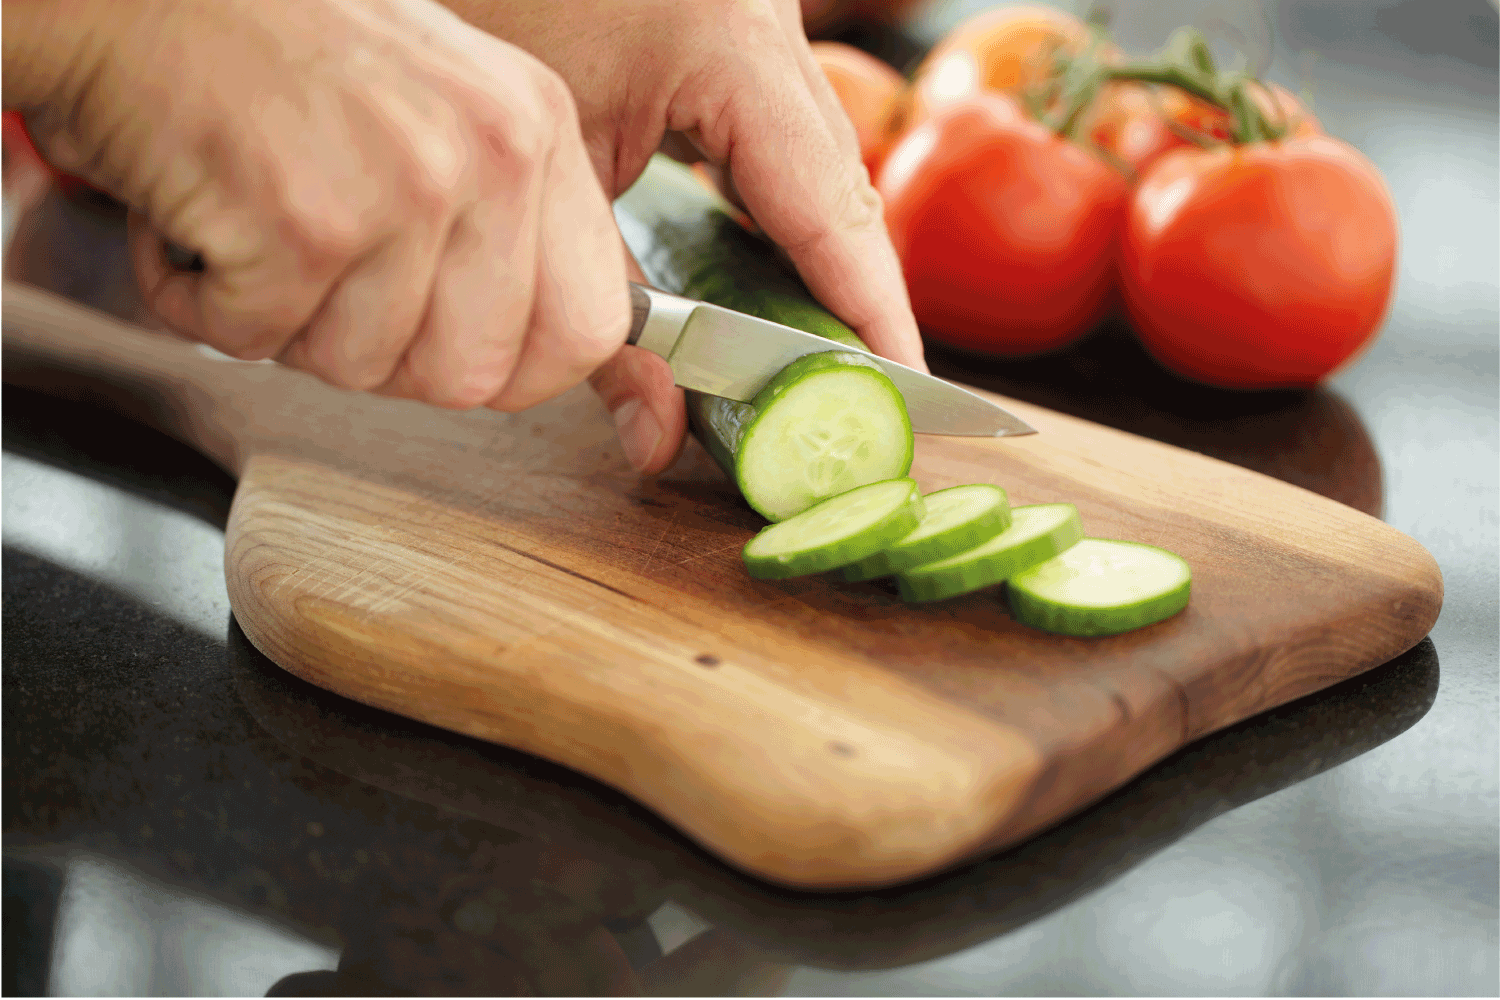 Hands slicing cucumber on rustic cutting board with paring knife with tomatoes in background